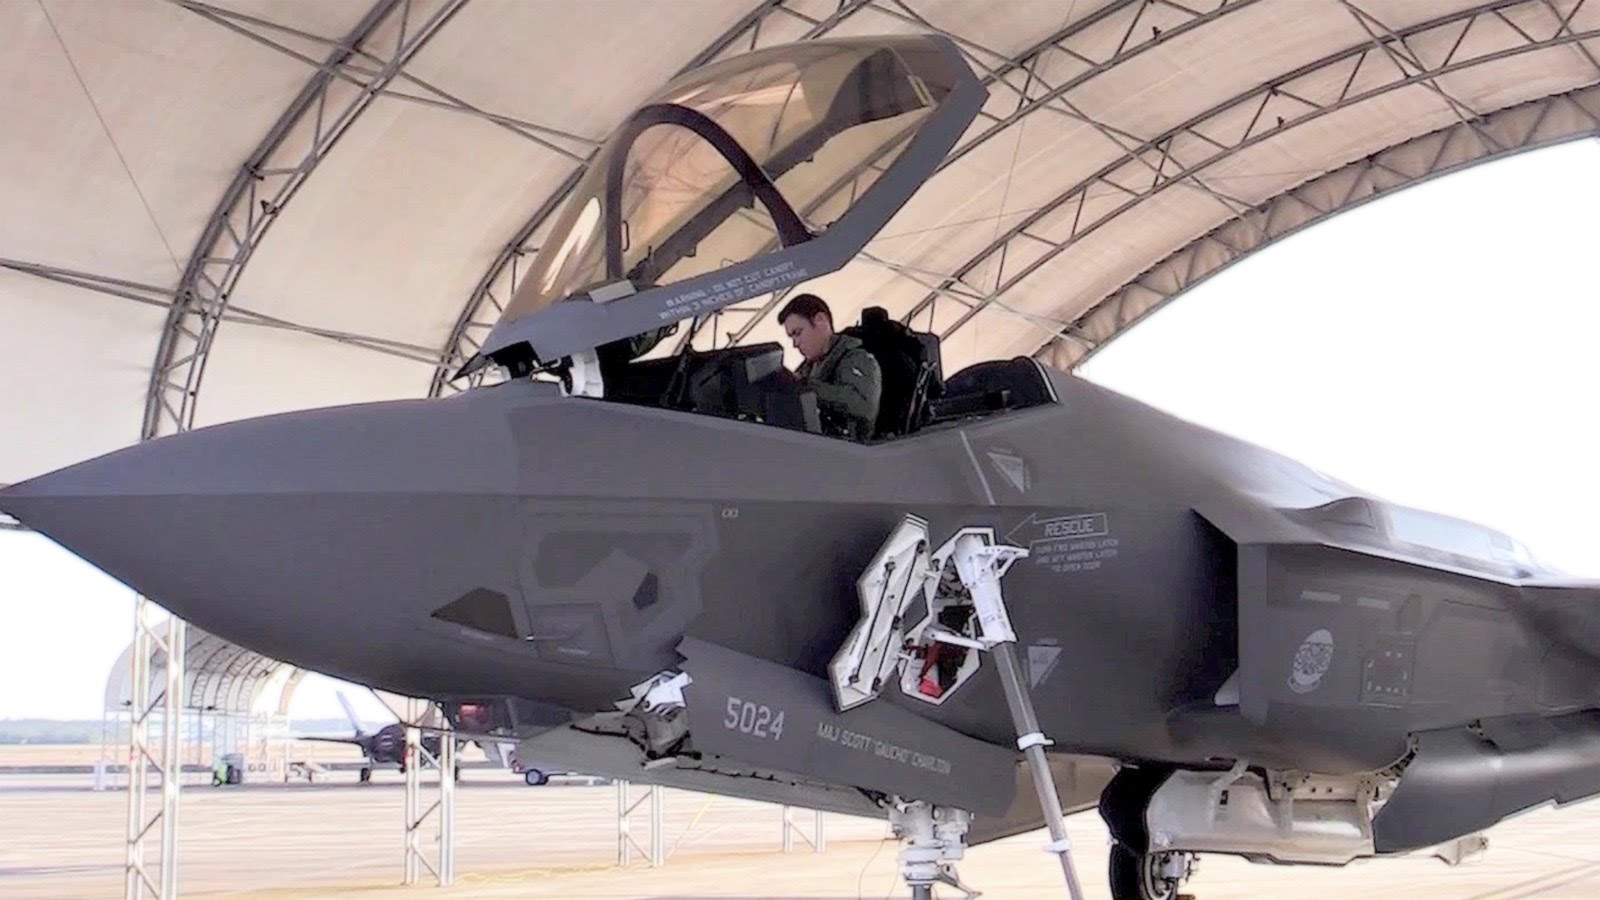 First Australian F-35 Pilot Train At Eglin Air Force Base